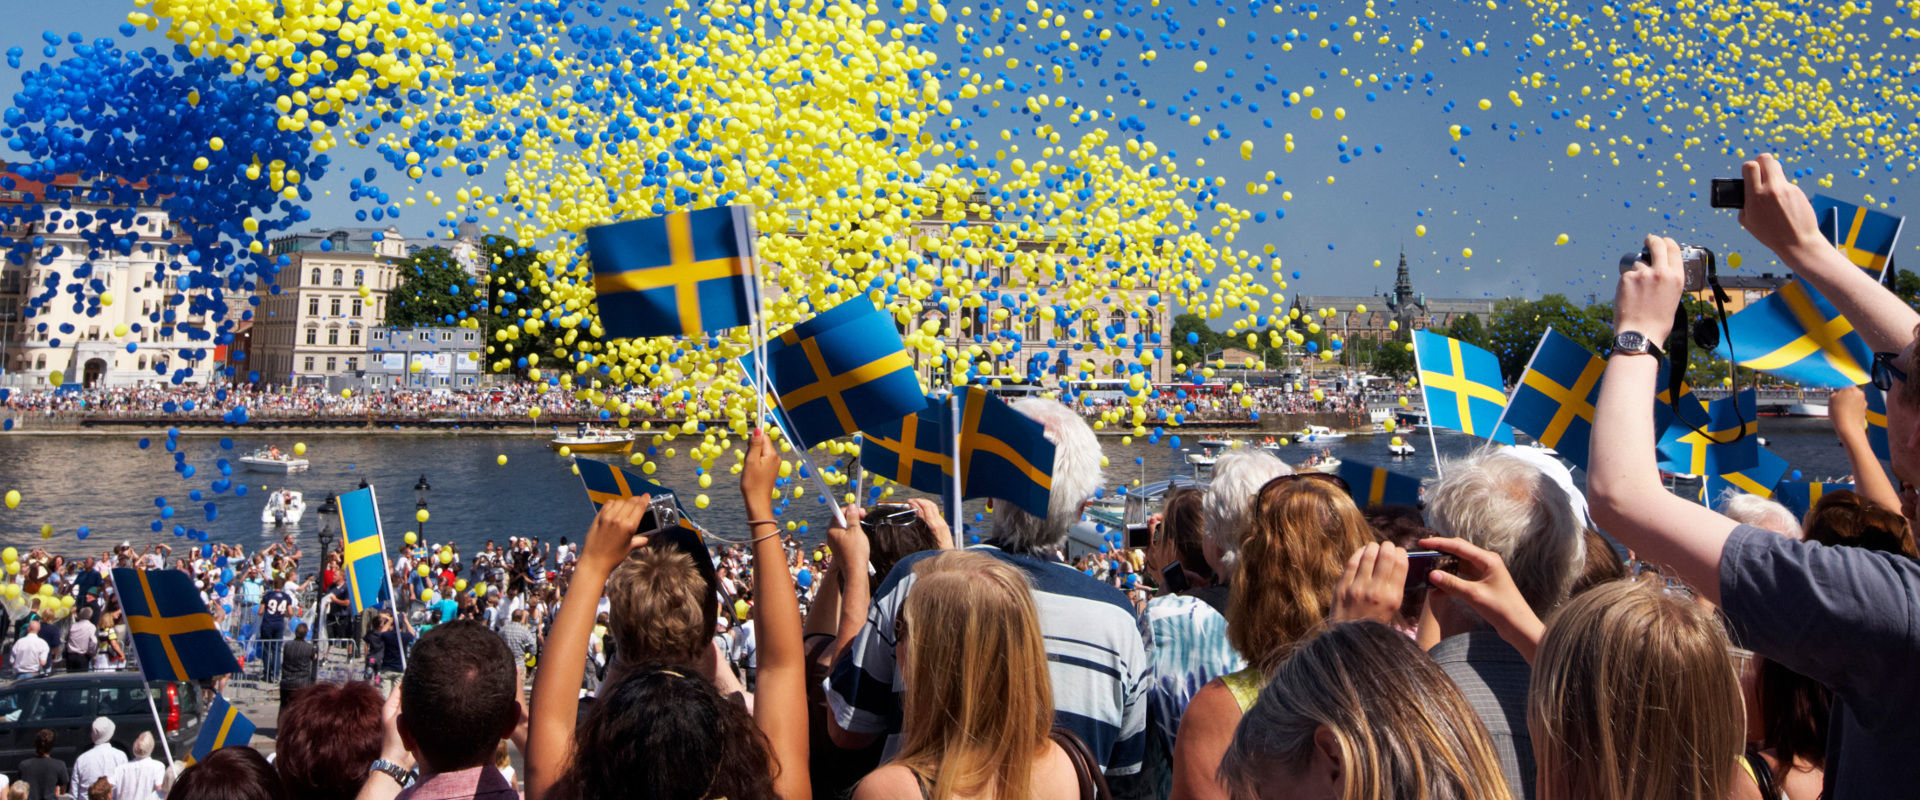 Best universities in Sweden, Educate yourself - Use Google Search